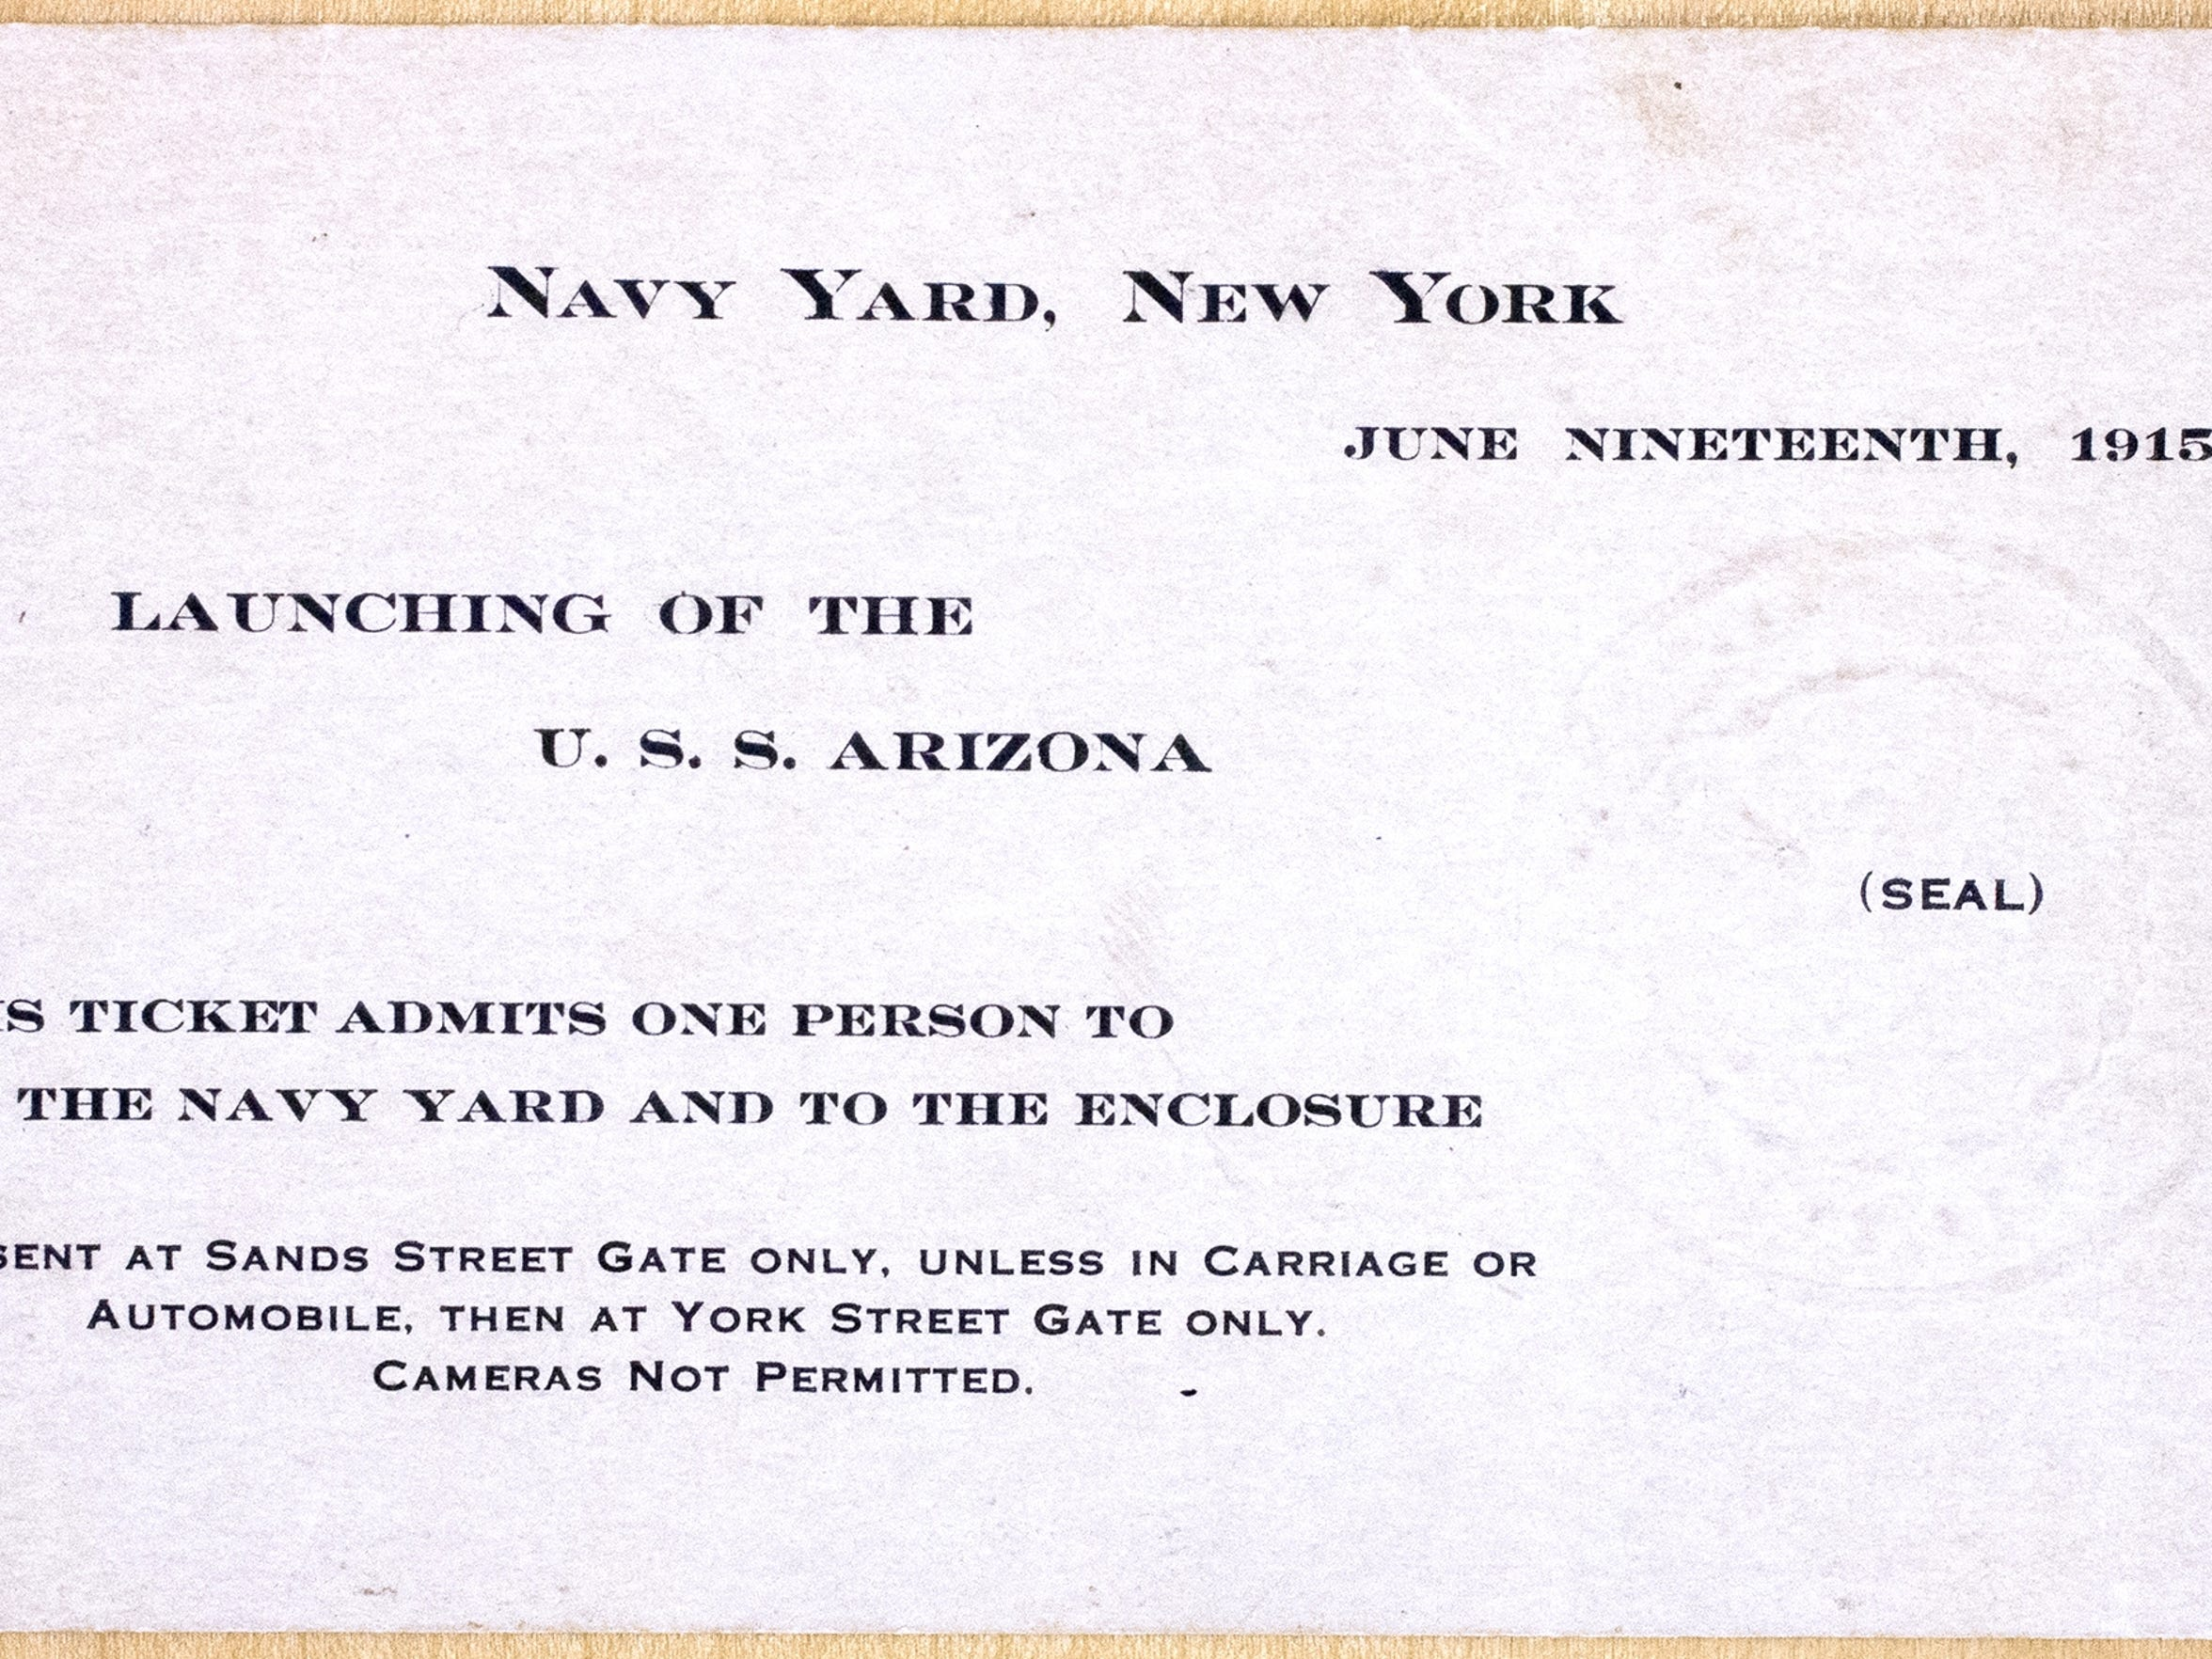 A ticket to the christening of the USS Arizona at the